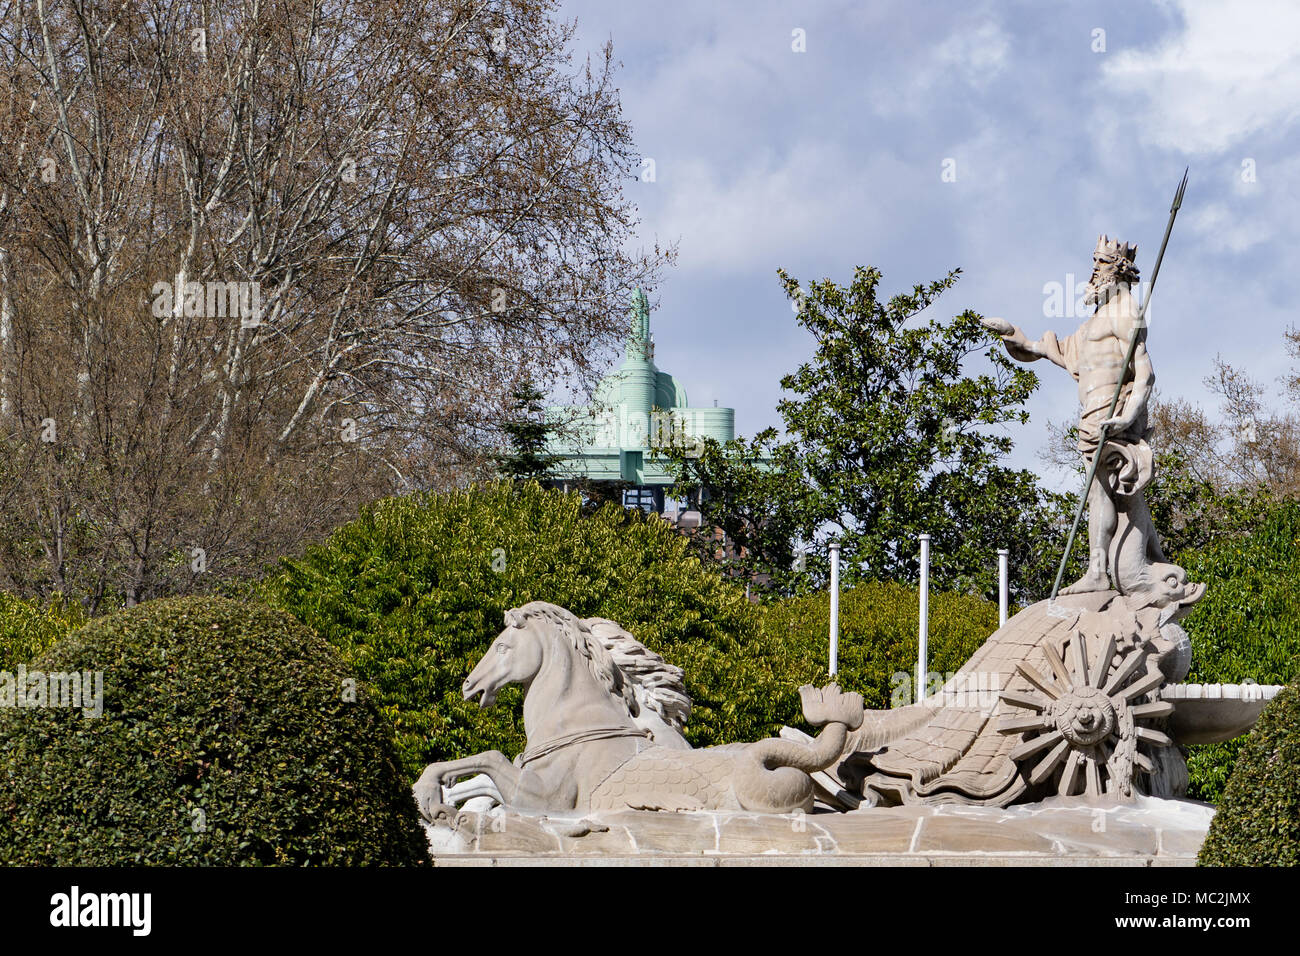 Fountain of Neptune, Roman God of the Sea, celebration point for supporters of Atletico Madrid football club, in Madrid, Spain - Stock Image